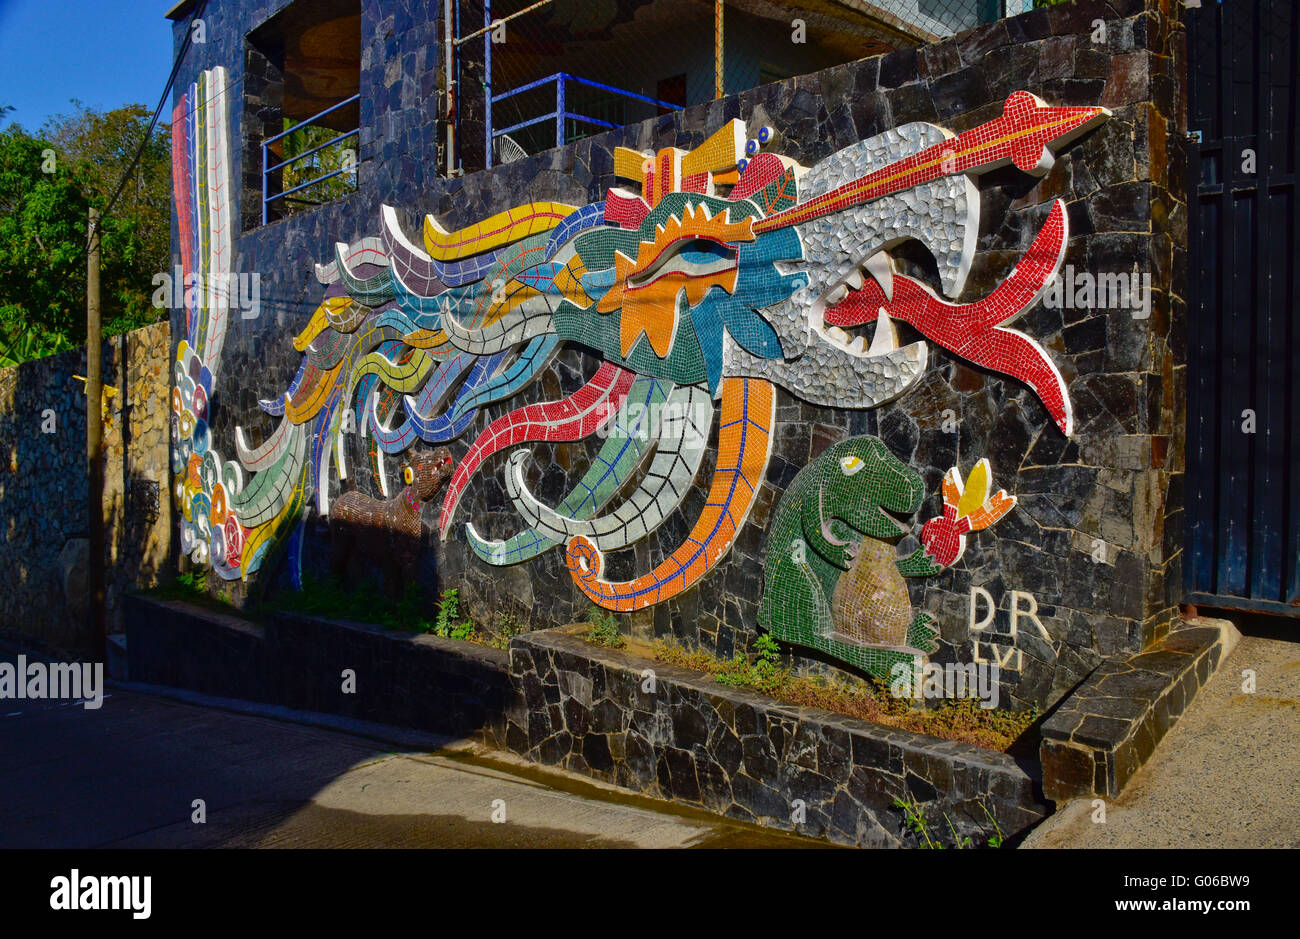 Diego Rivera designed tiled mosaic mural (Ehecatl-Calle) along the street in front of the Dolores Olmeda home in Stock Photo